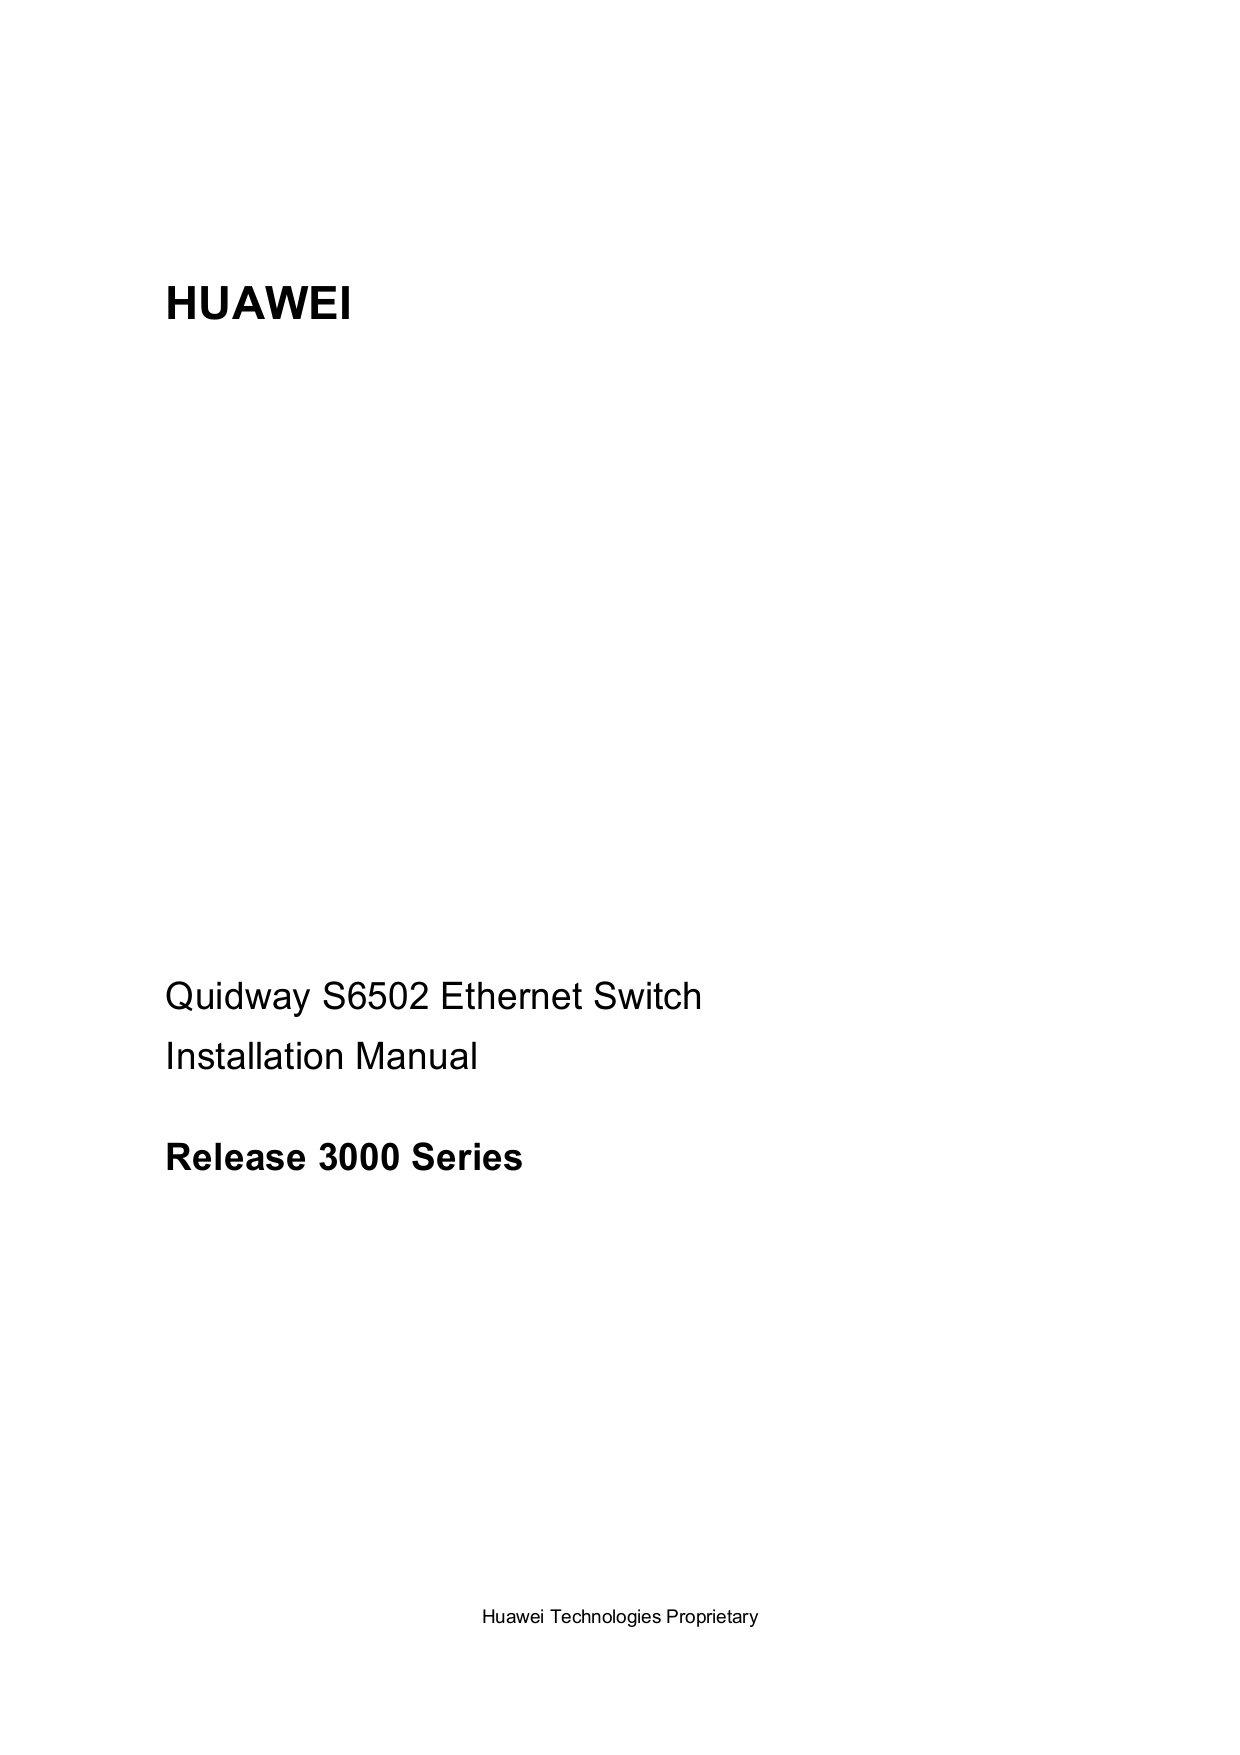 pdf for Huawei Switch Quidway S6503 manual